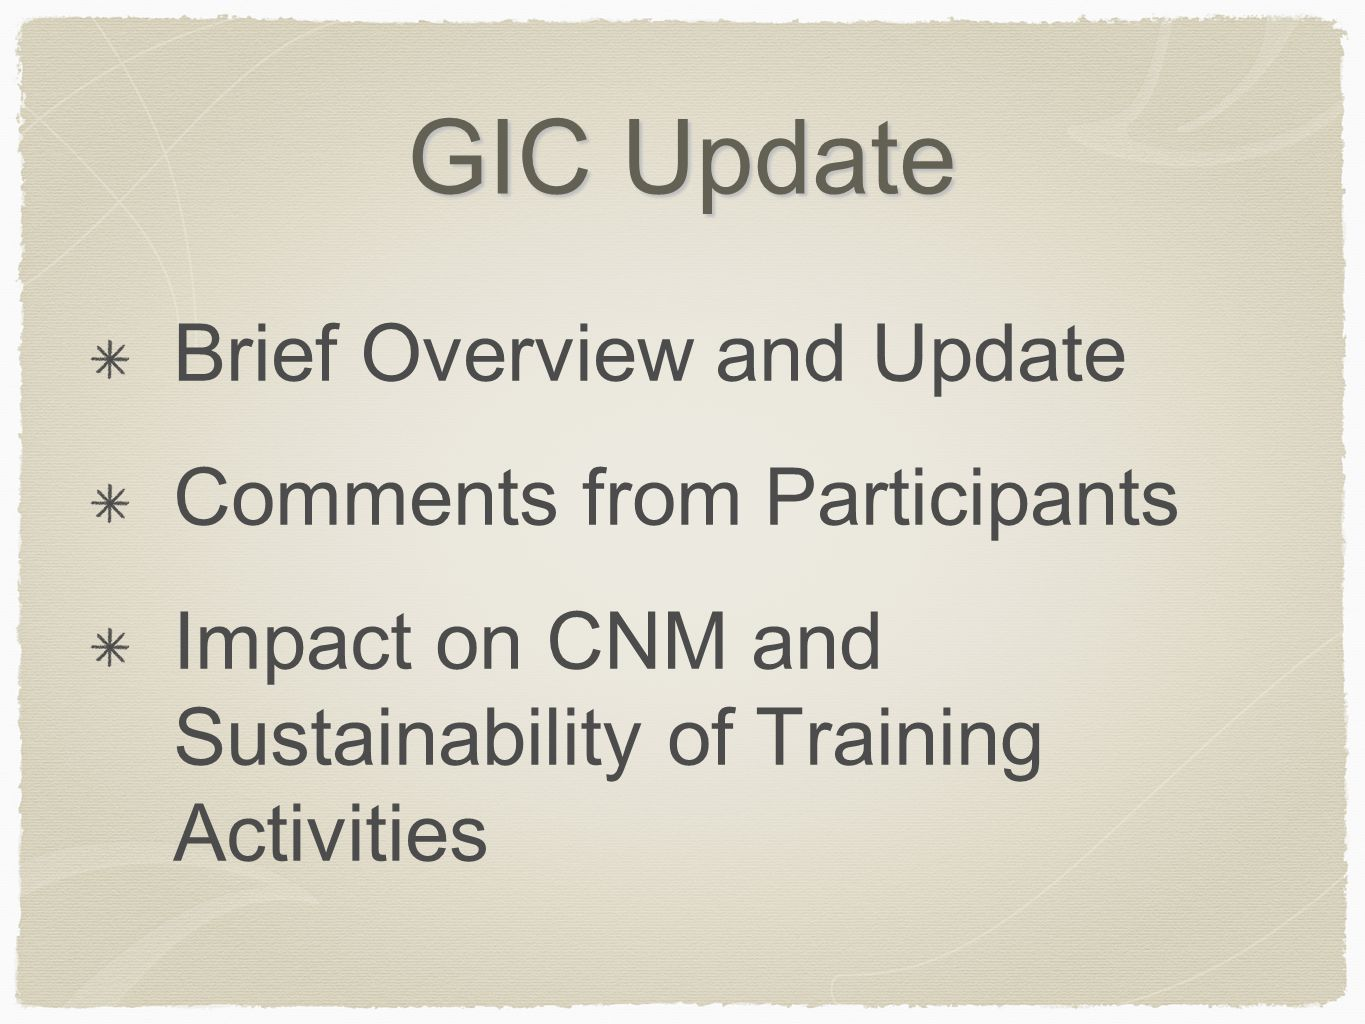 GIC Update Brief Overview and Update Comments from Participants Impact on CNM and Sustainability of Training Activities